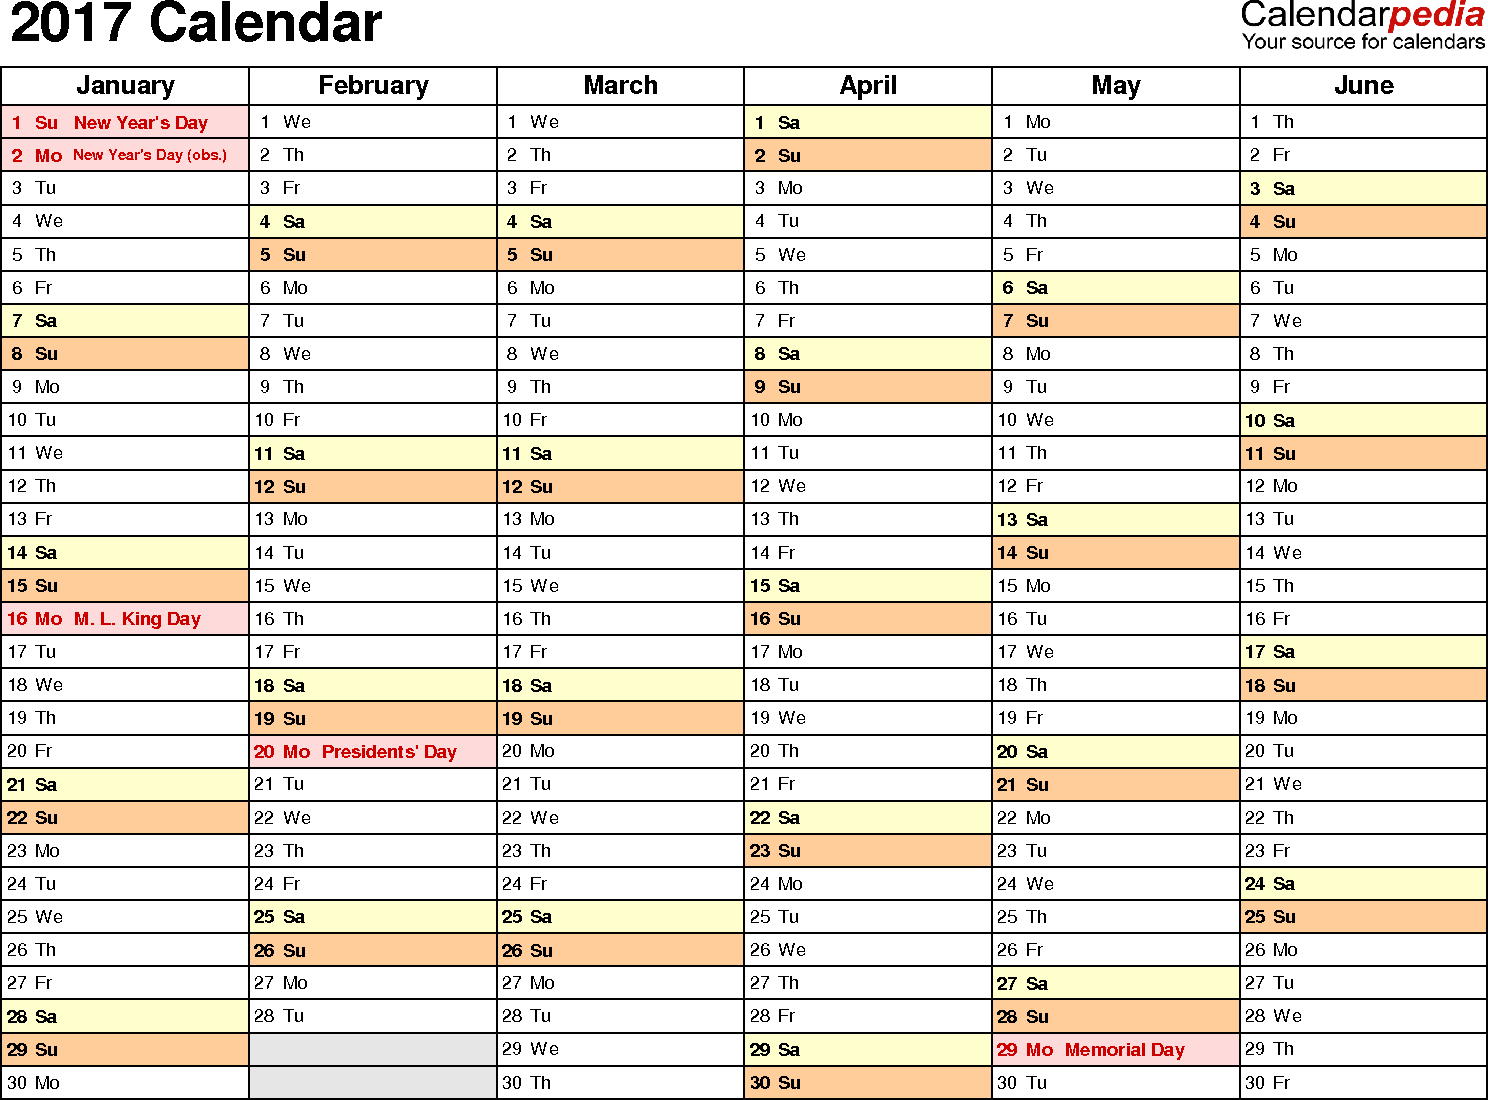 Ediblewildsus  Prepossessing  Calendar  Download  Free Printable Excel Templates Xls With Fair Template   Calendar For Excel Months Horizontally  Pages Landscape Orientation With Beautiful How To Convert Row To Column In Excel Also How To Update Excel On Mac In Addition How To Copy Multiple Rows In Excel And Excel Beginning Of Month As Well As Sort Numbers In Excel Additionally Excel Blog From Calendarpediacom With Ediblewildsus  Fair  Calendar  Download  Free Printable Excel Templates Xls With Beautiful Template   Calendar For Excel Months Horizontally  Pages Landscape Orientation And Prepossessing How To Convert Row To Column In Excel Also How To Update Excel On Mac In Addition How To Copy Multiple Rows In Excel From Calendarpediacom